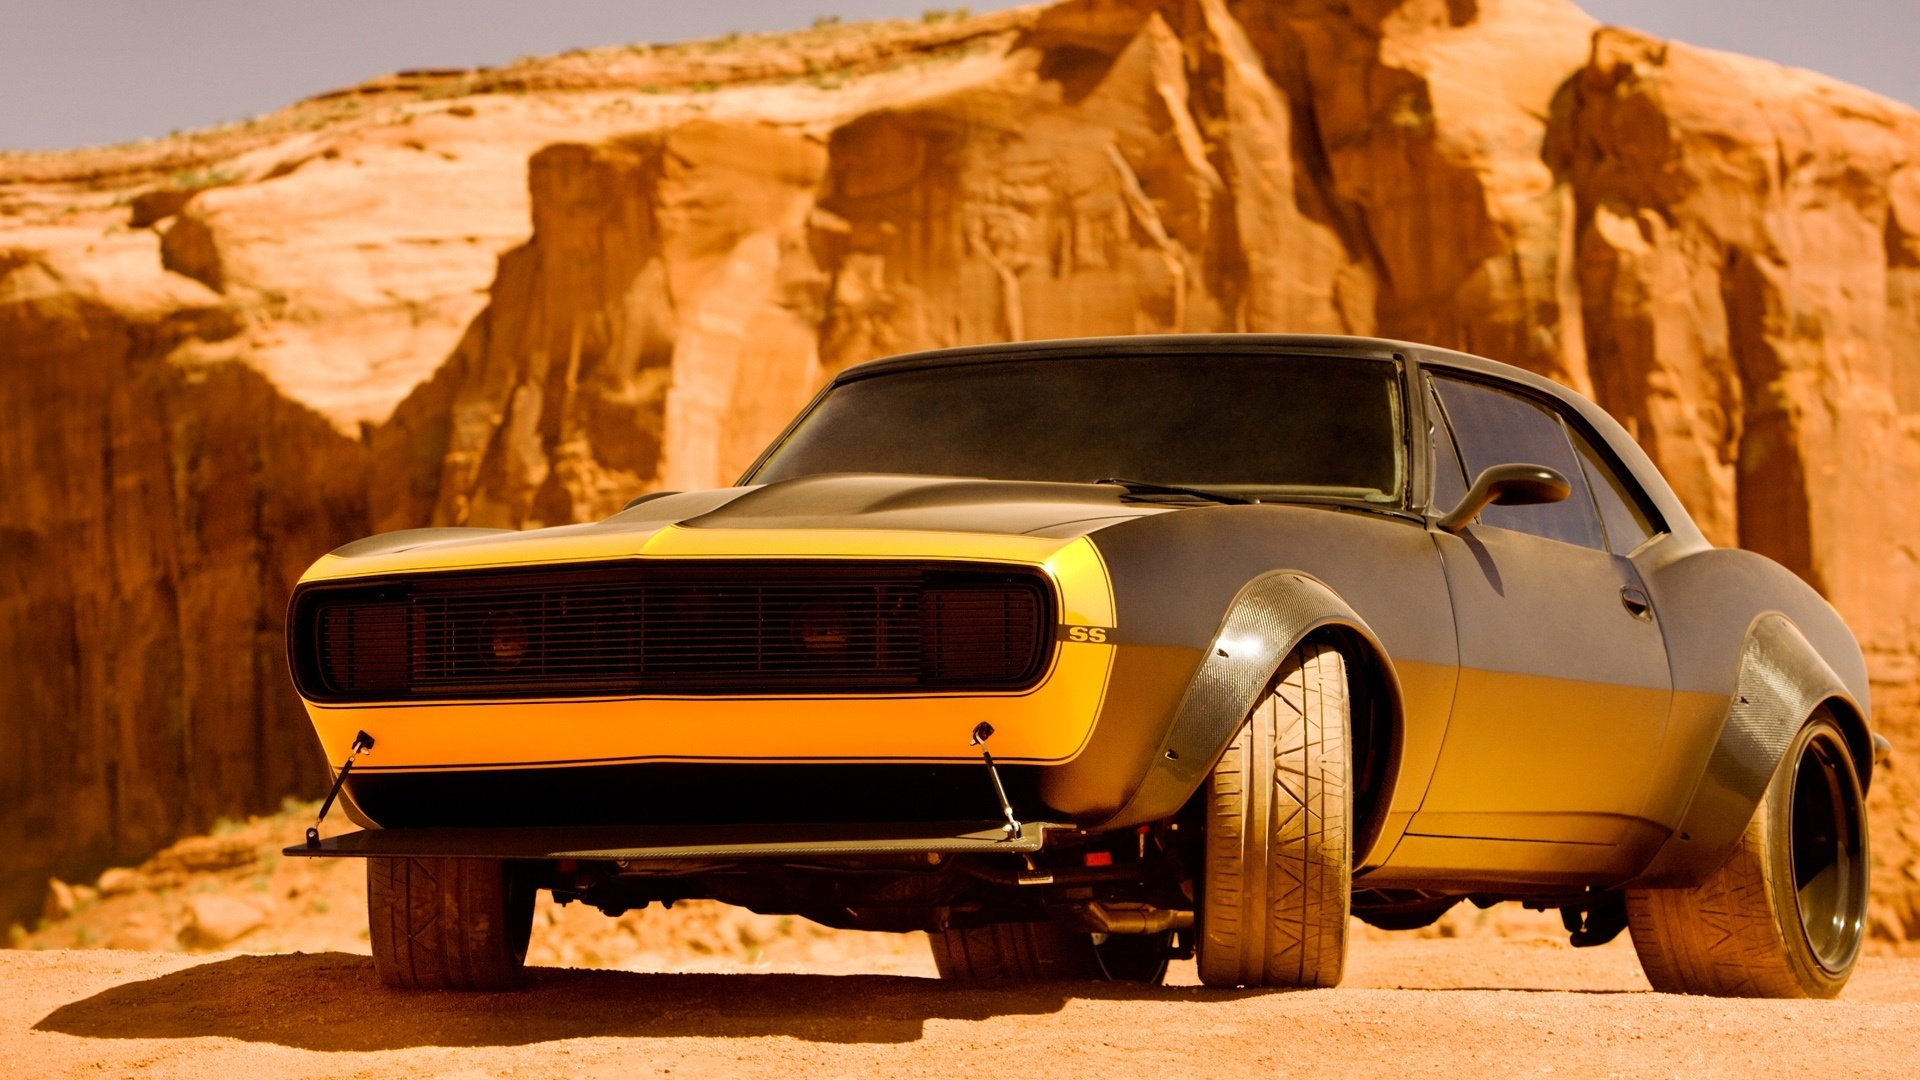 Movie - Transformers: Age of Extinction  Bumblebee (Transformers) Hot Rod Chevrolet Camaro SS Wallpaper